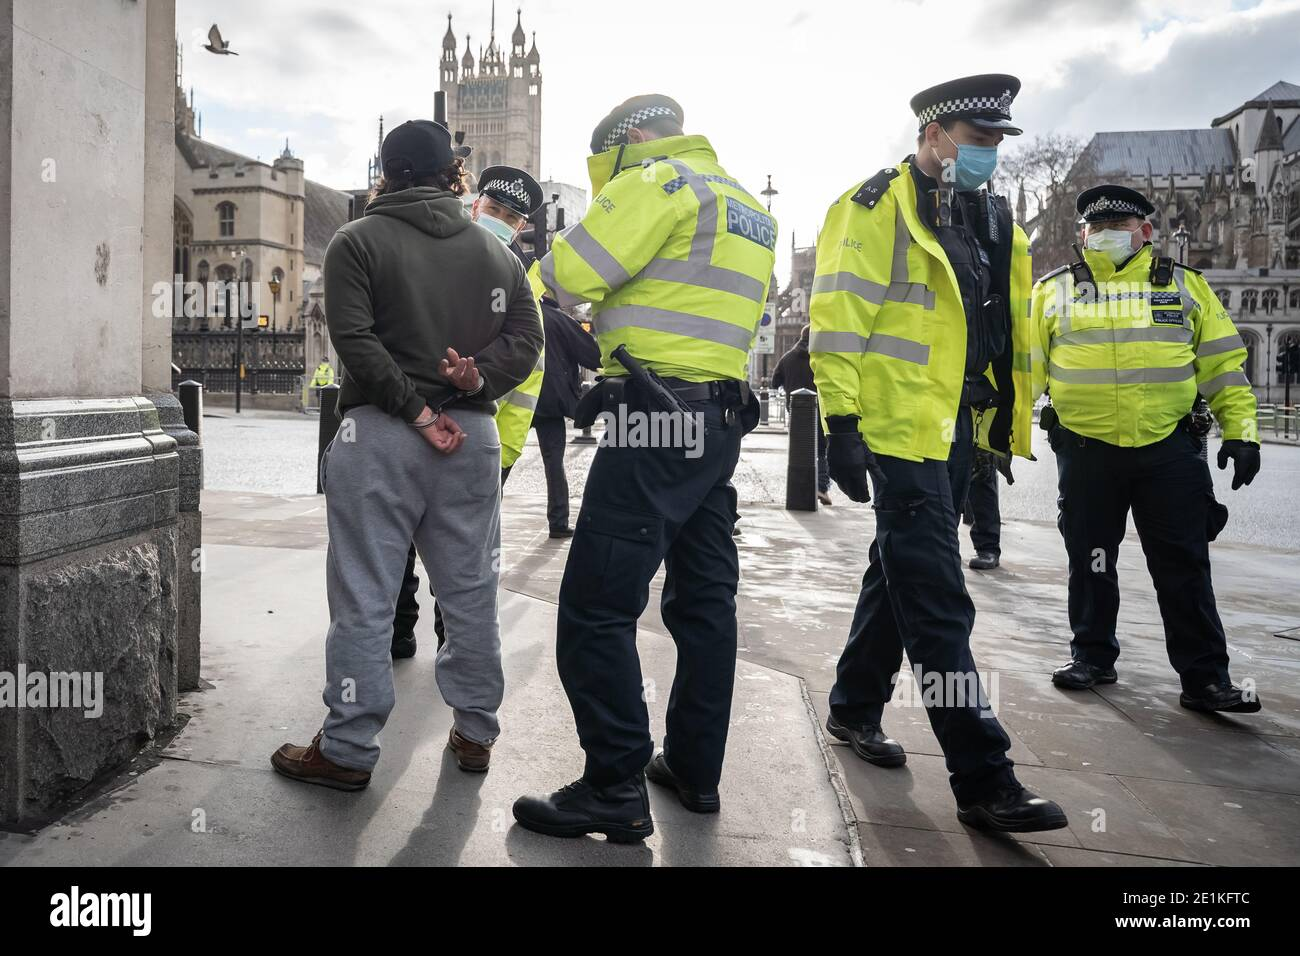 Coronavirus: Arrests are made during an attempted anti-lockdown demonstration in Parliament Square, London against the current lock-down restrictions. Stock Photo